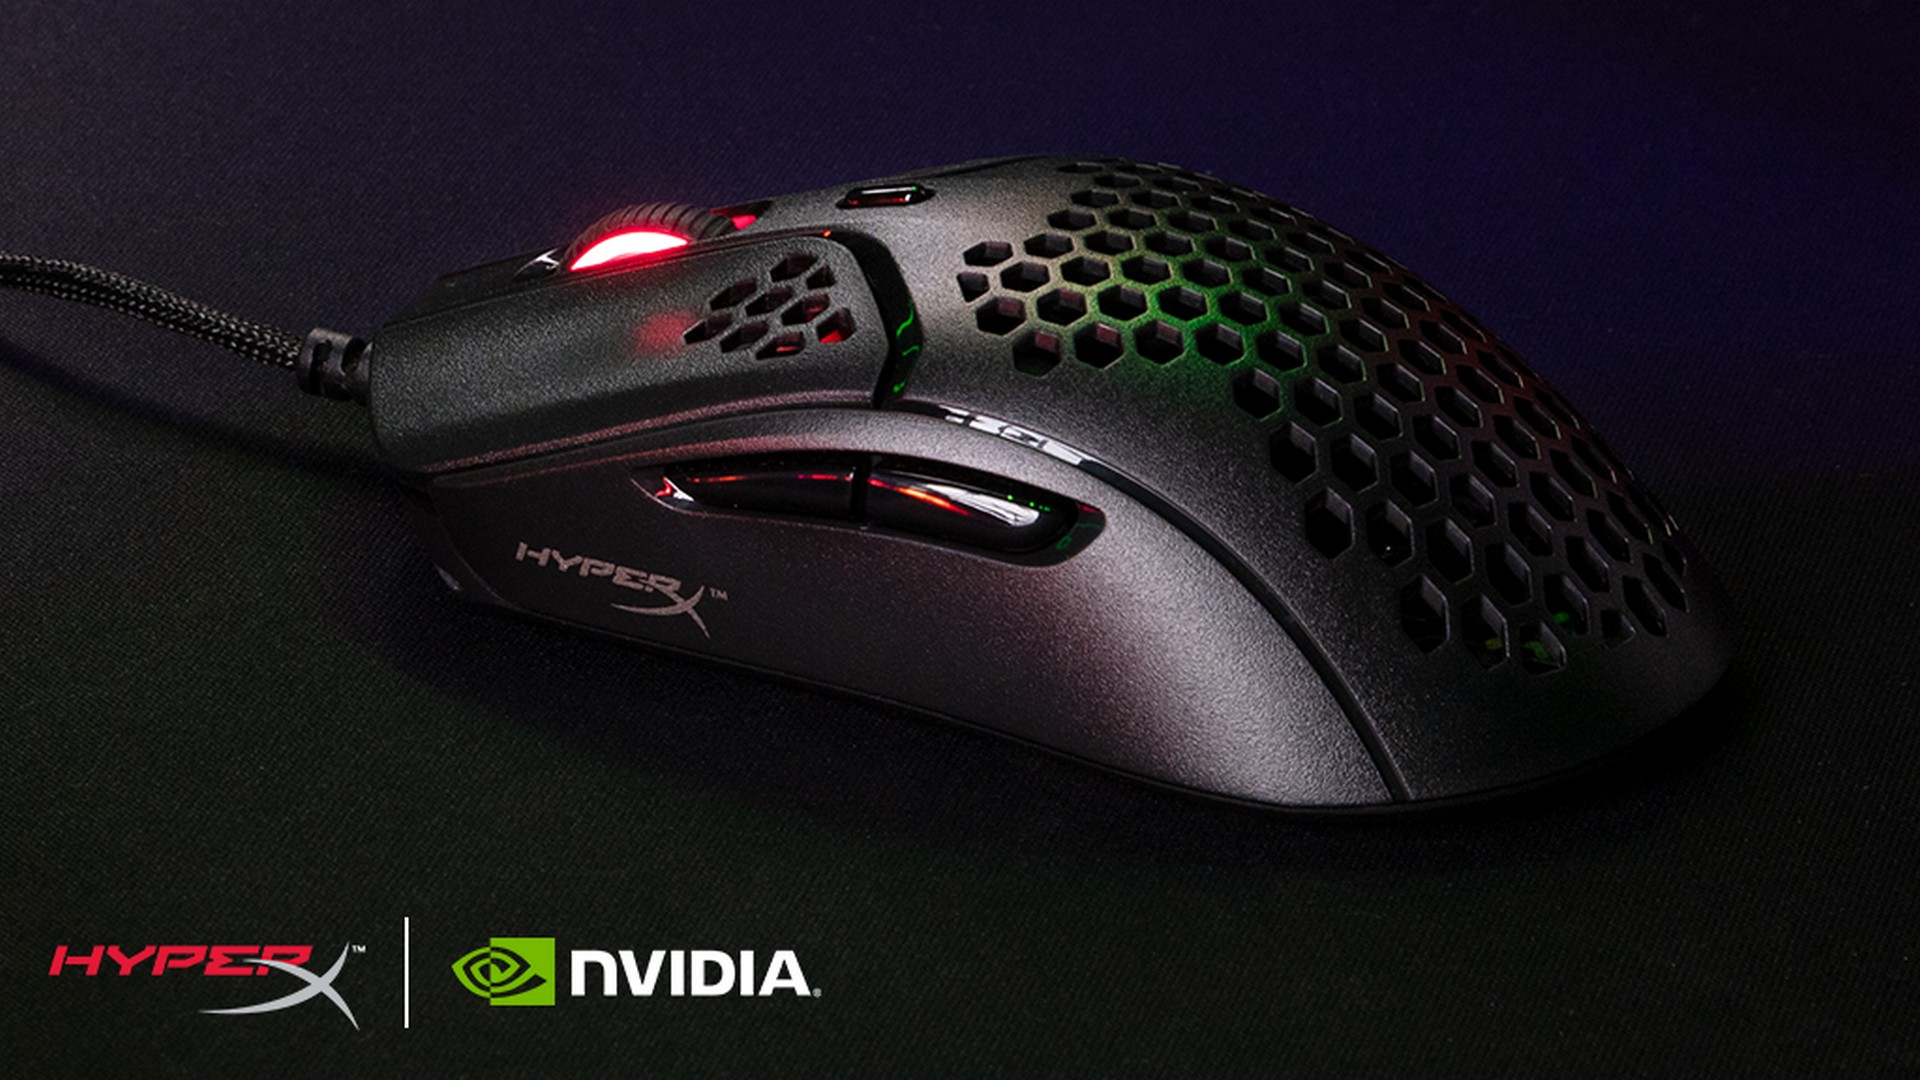 HyperX Pulsefire Haste Gaming Mouse Now Compatible with NVIDIA Reflex